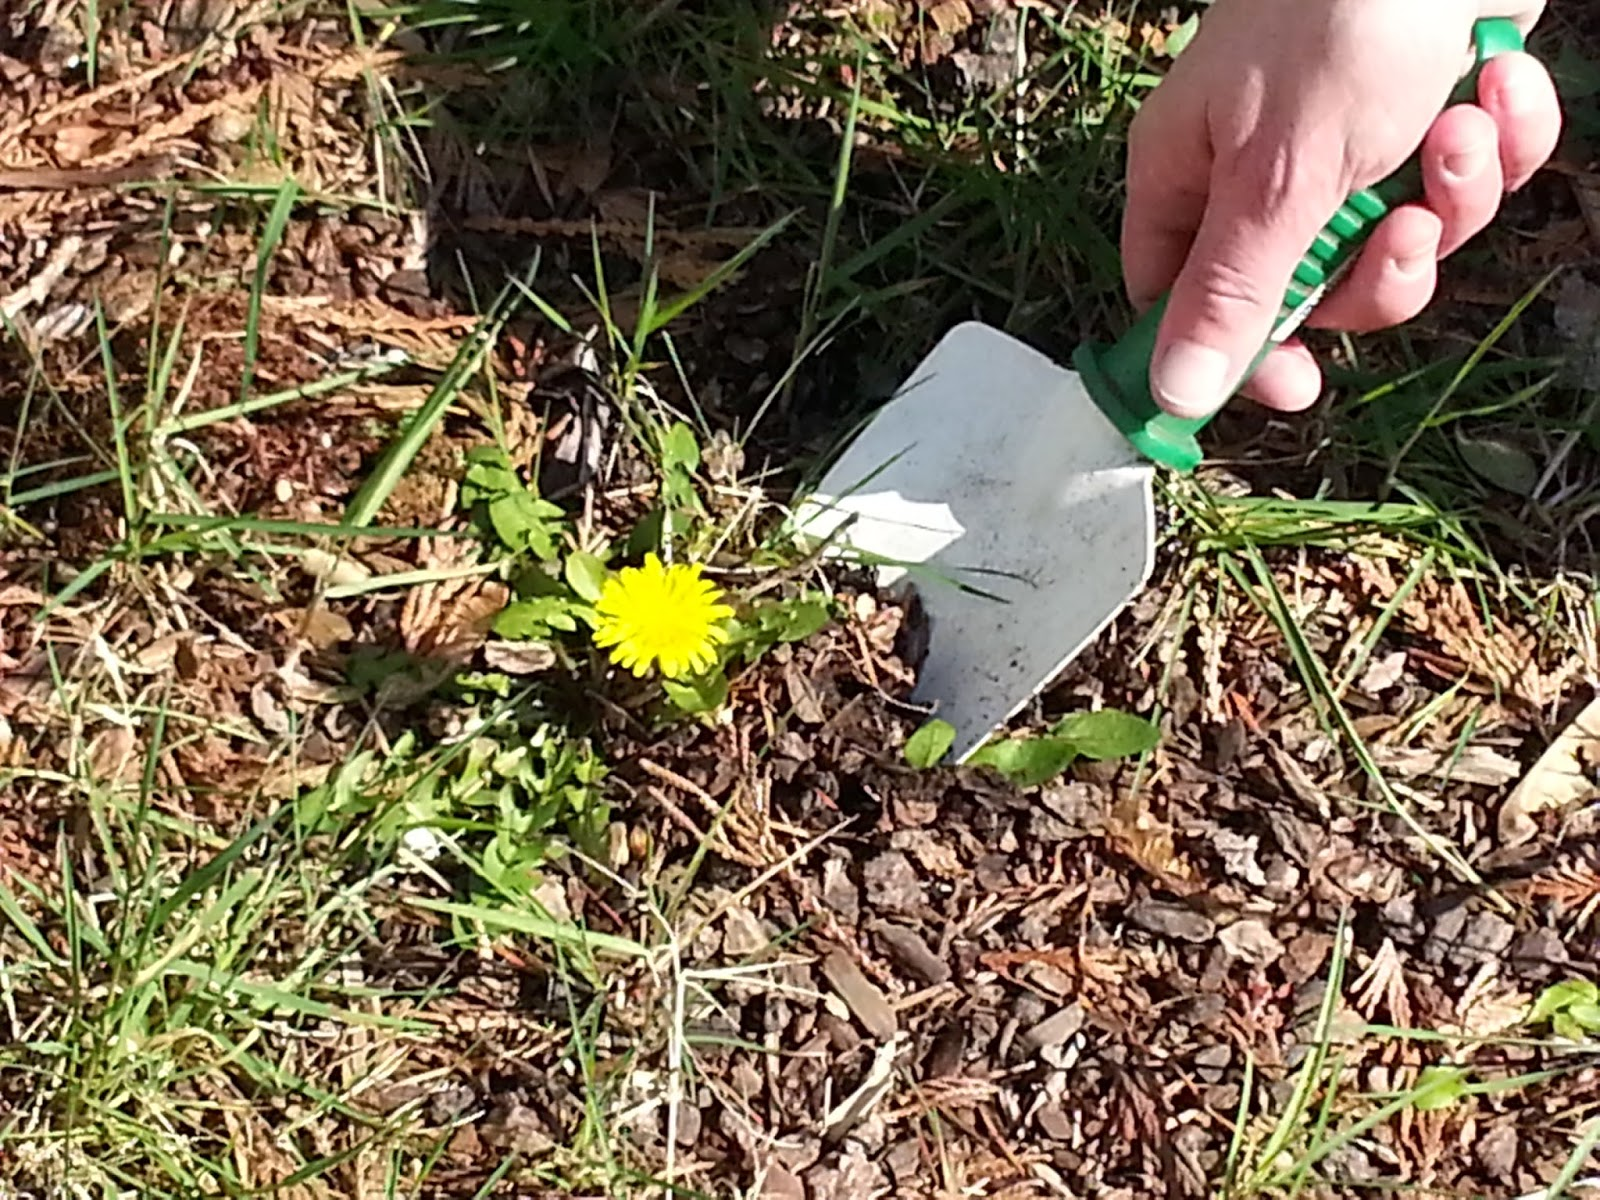 digging up dandelion weed from garden